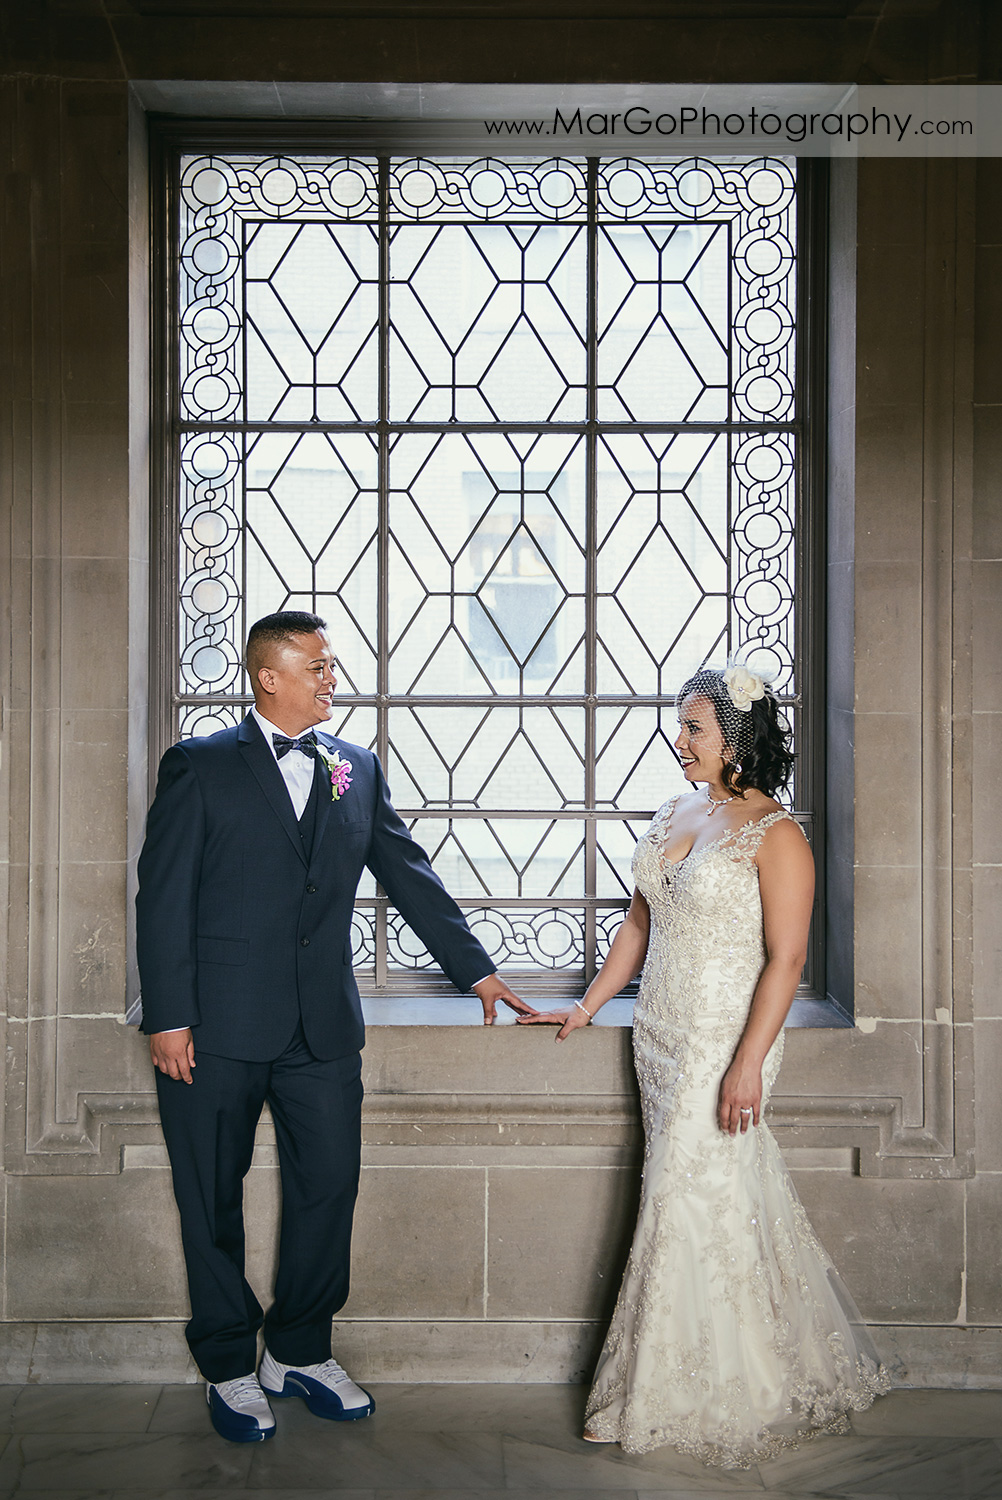 bride and groom in front of the stained glass window at San Francisco City Hall